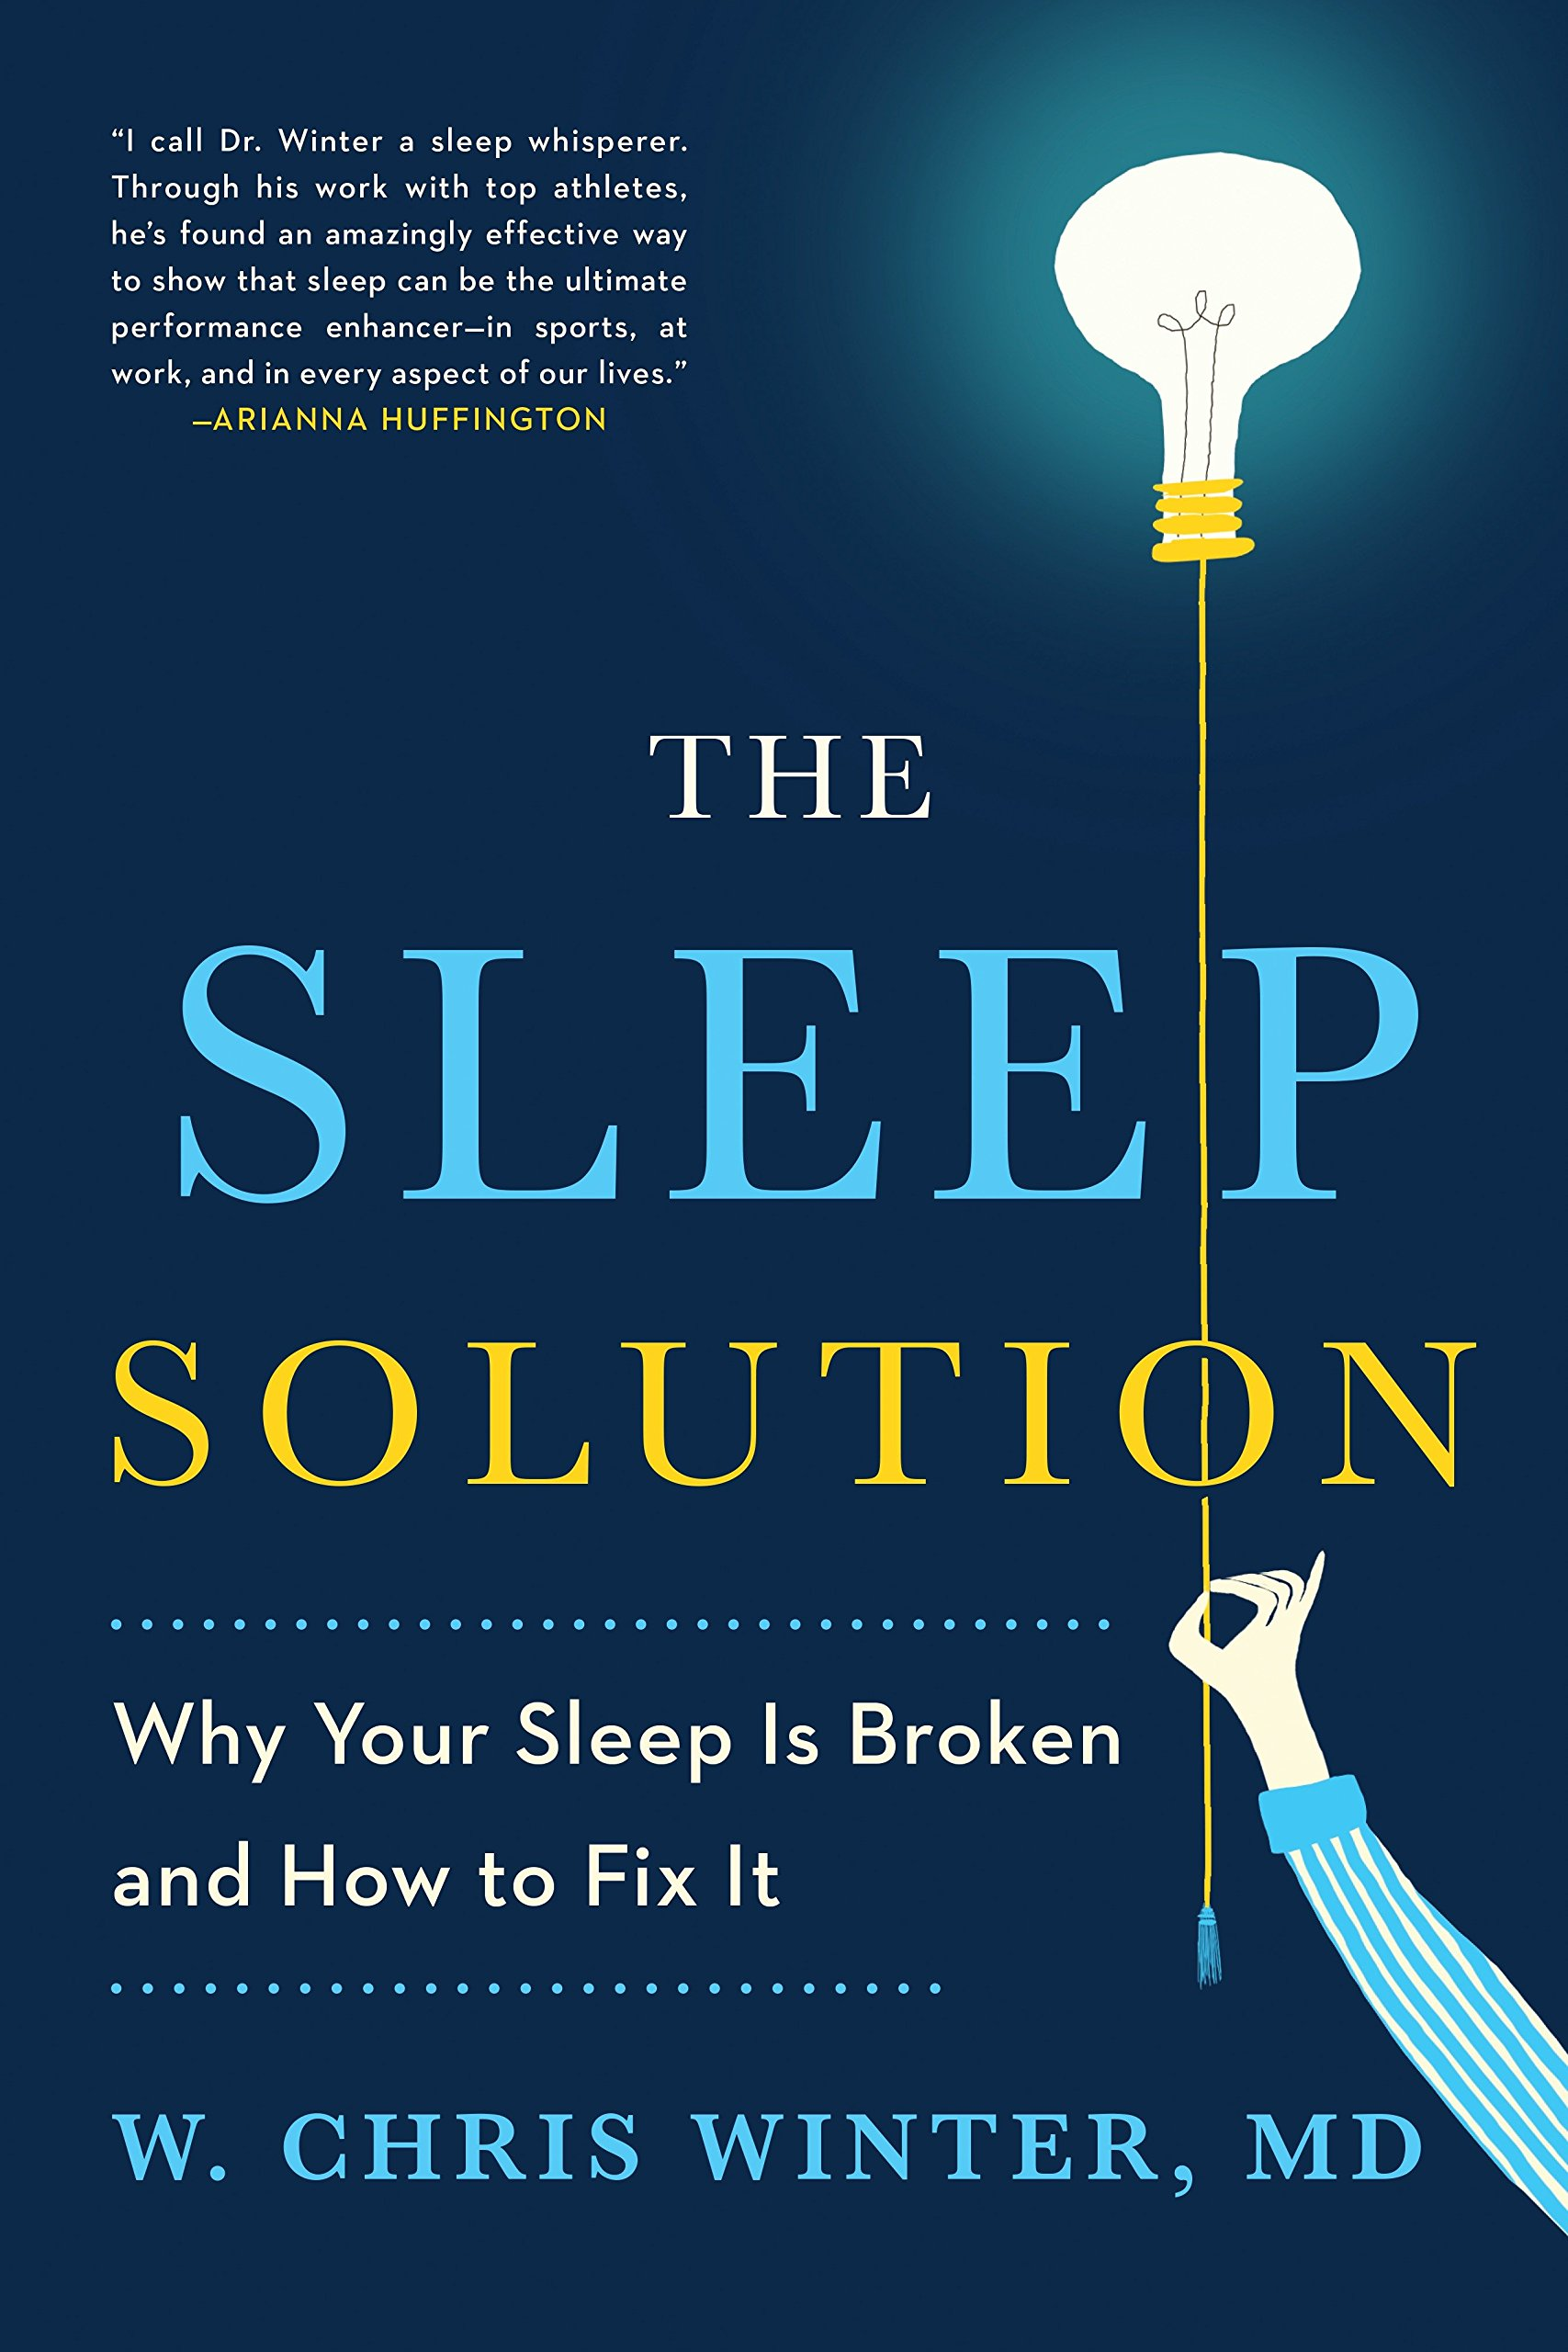 Sleep Solution Why Your Broken product image